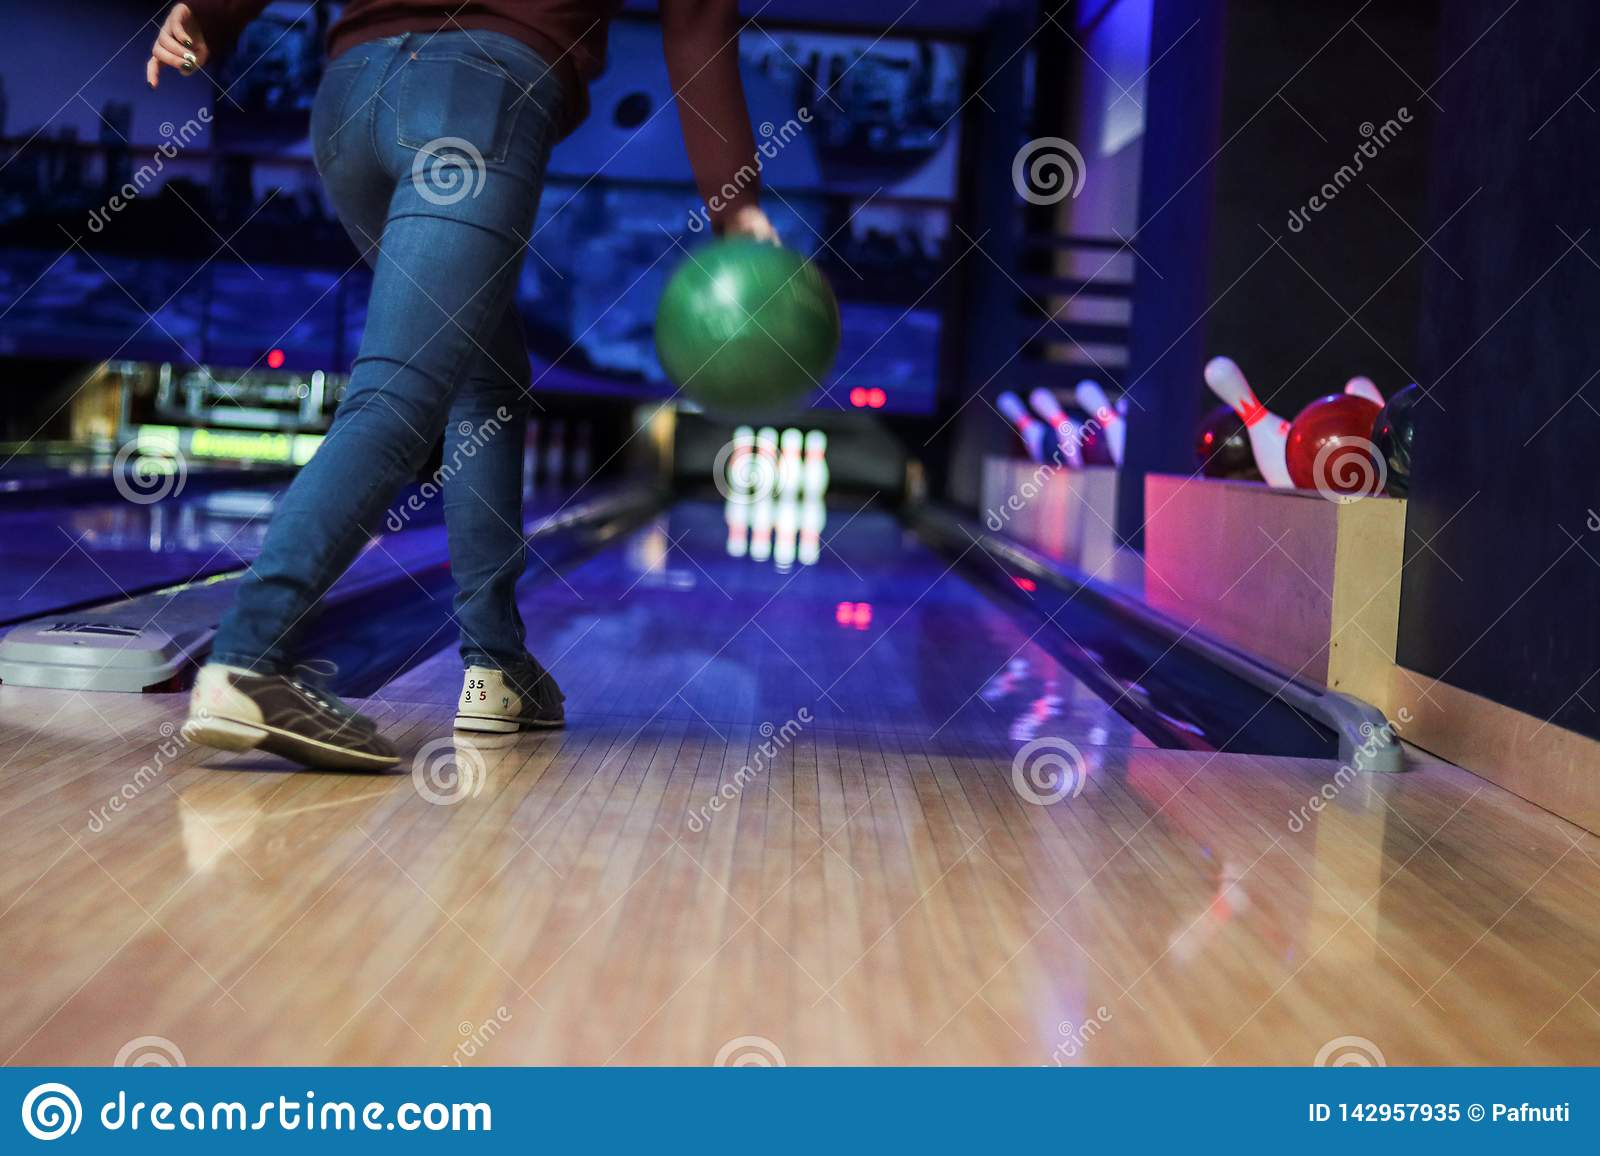 Club for bowling is throwing ball